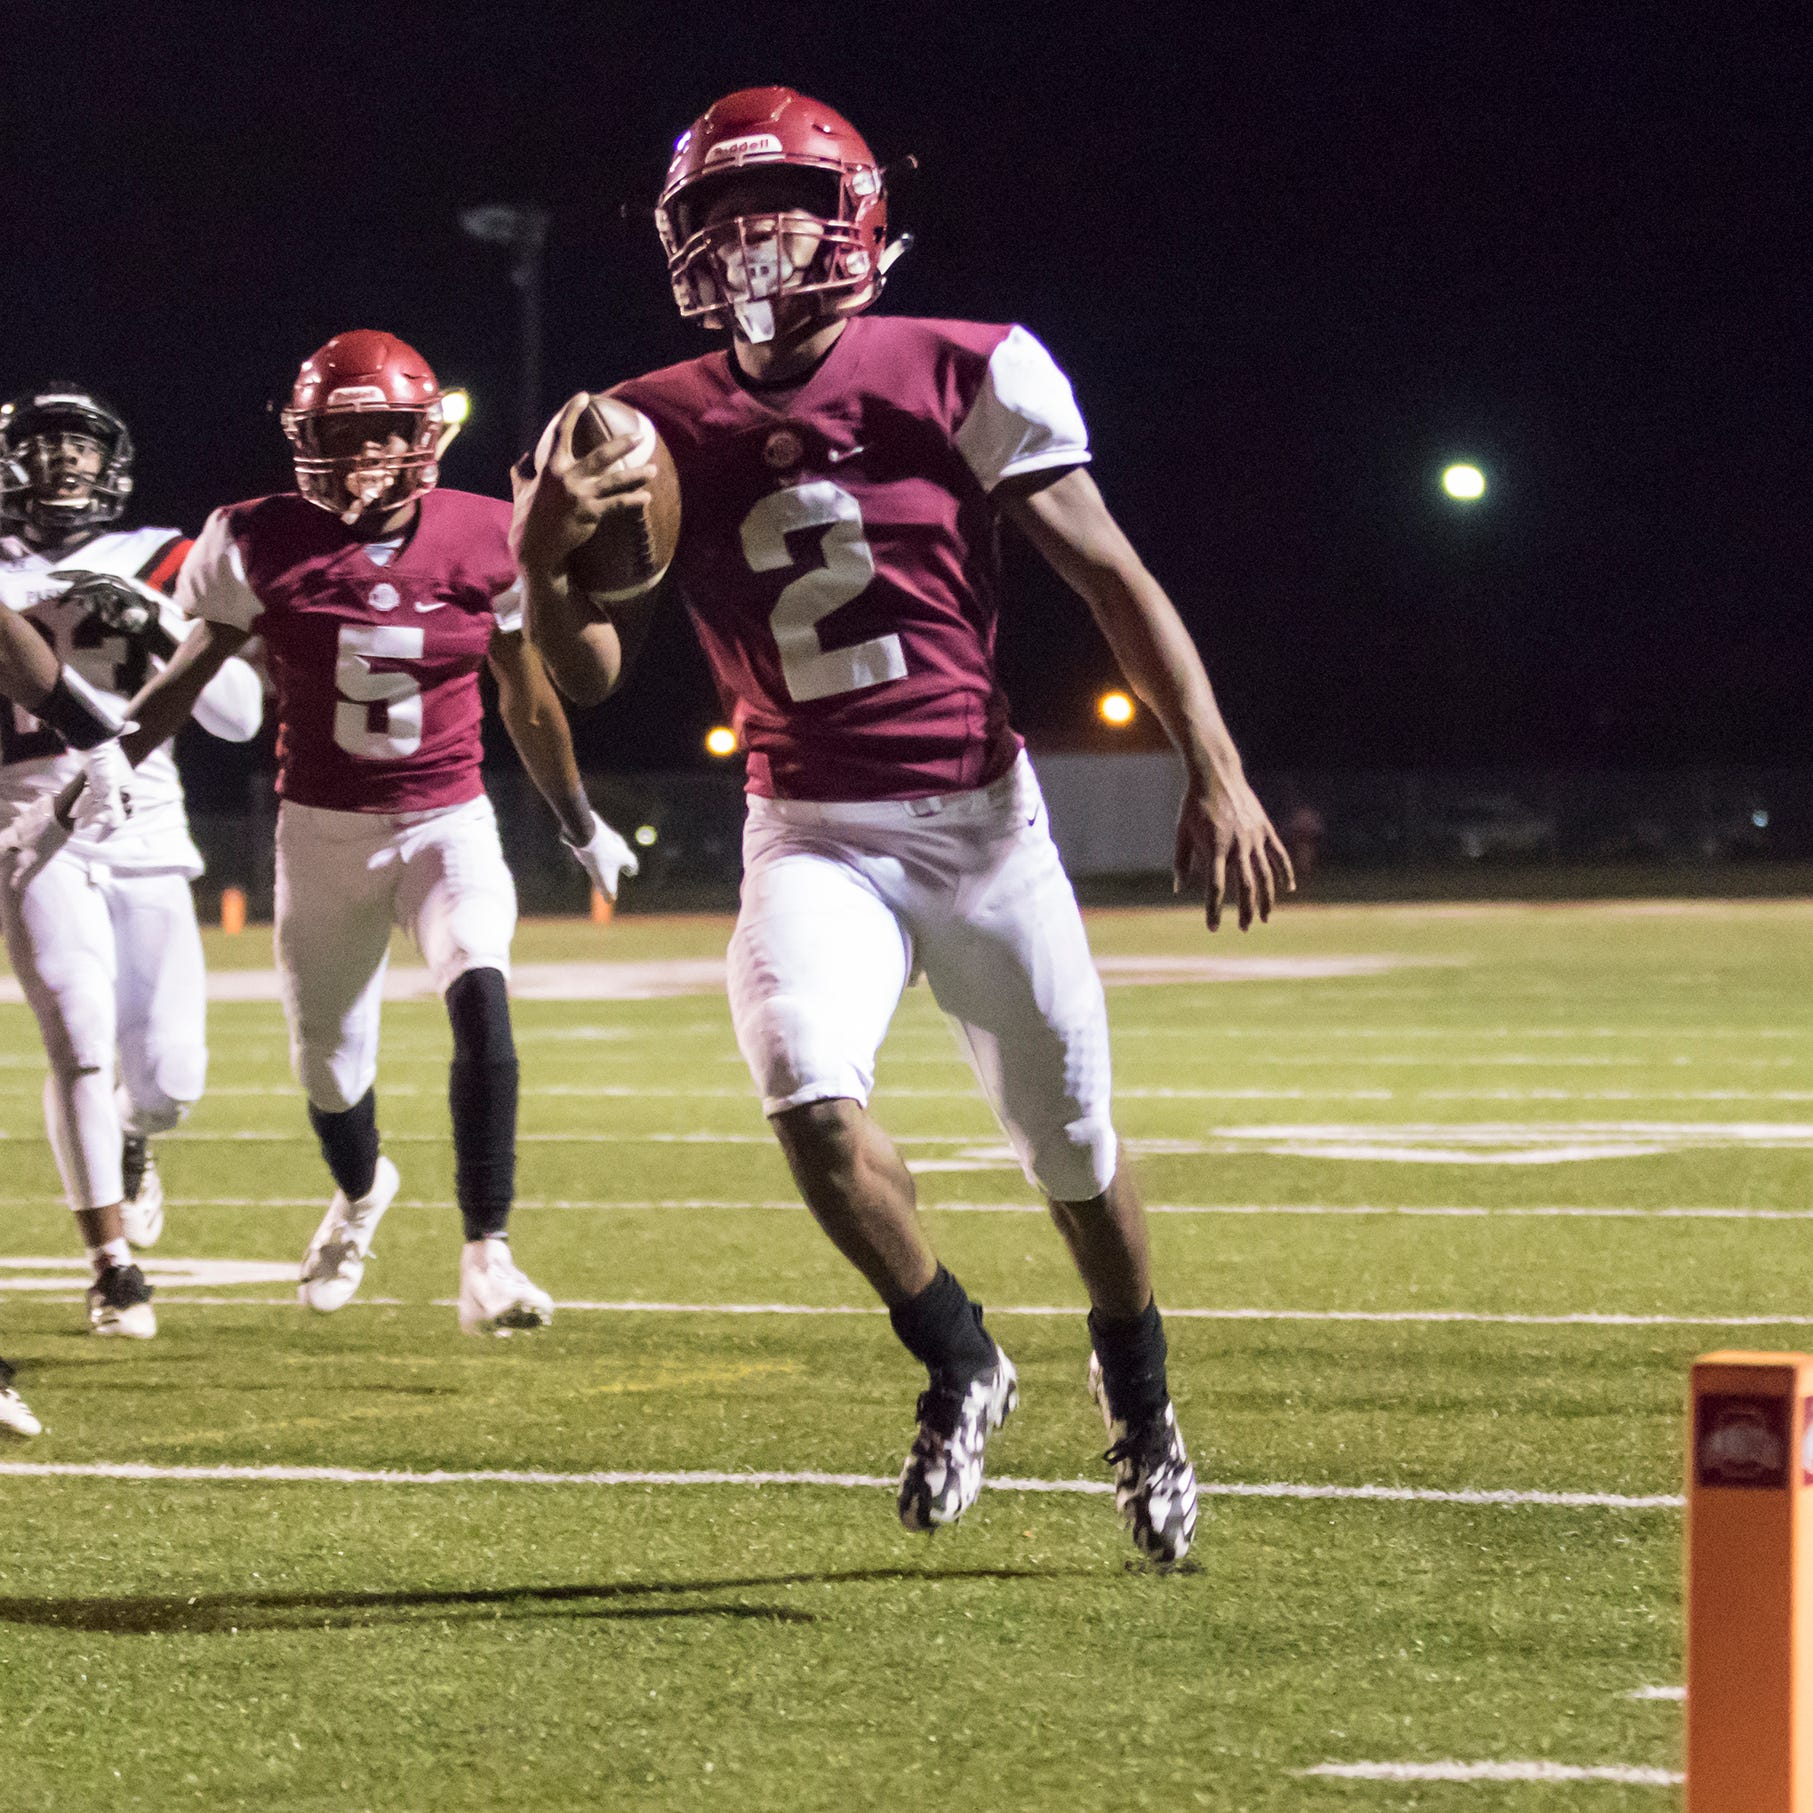 Prep football playoffs: Ouachita avoids upset, looks to play spoiler at Terrebonne